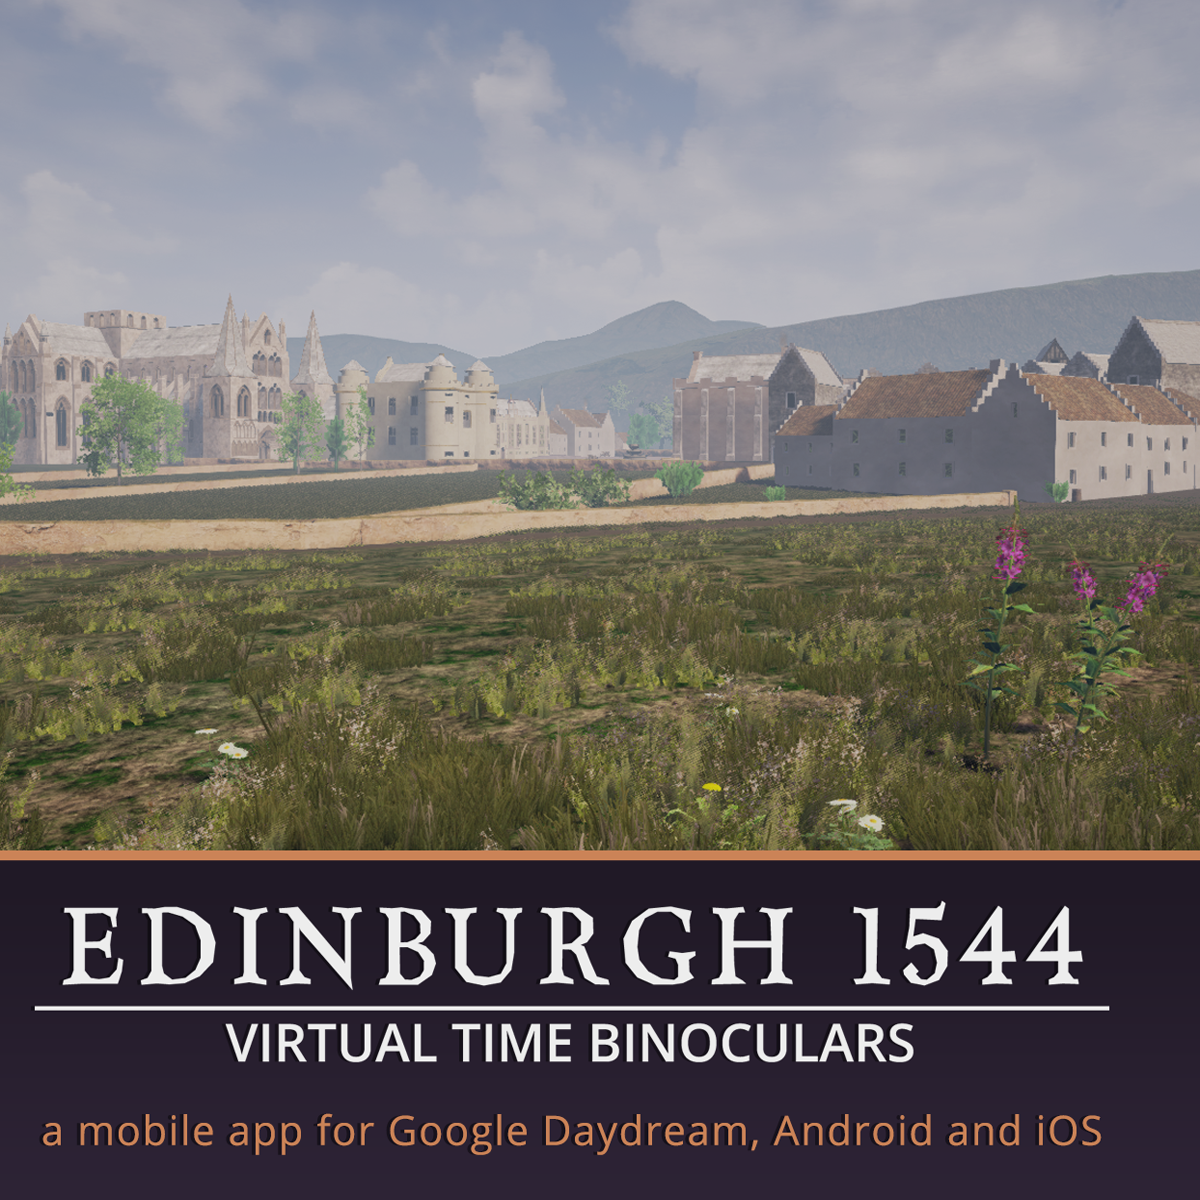 Edinburgh 1544 App - Map